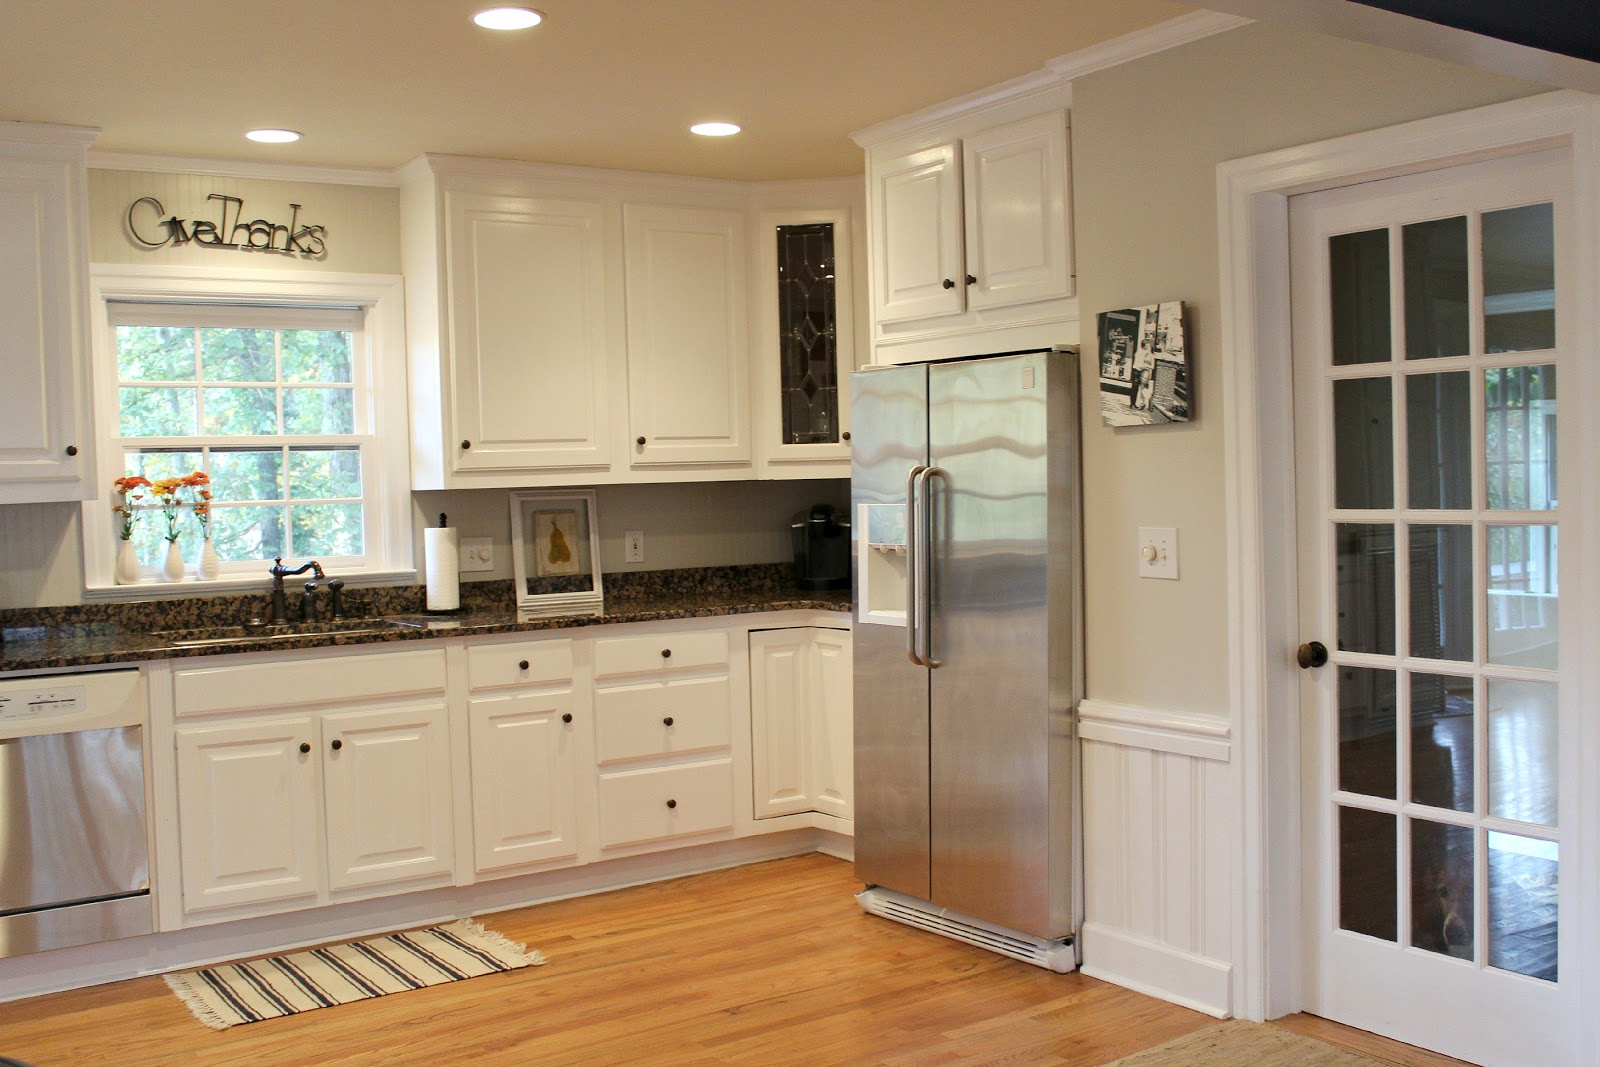 Ten june kitchen makeover before after Best white paint for kitchen cabinets behr